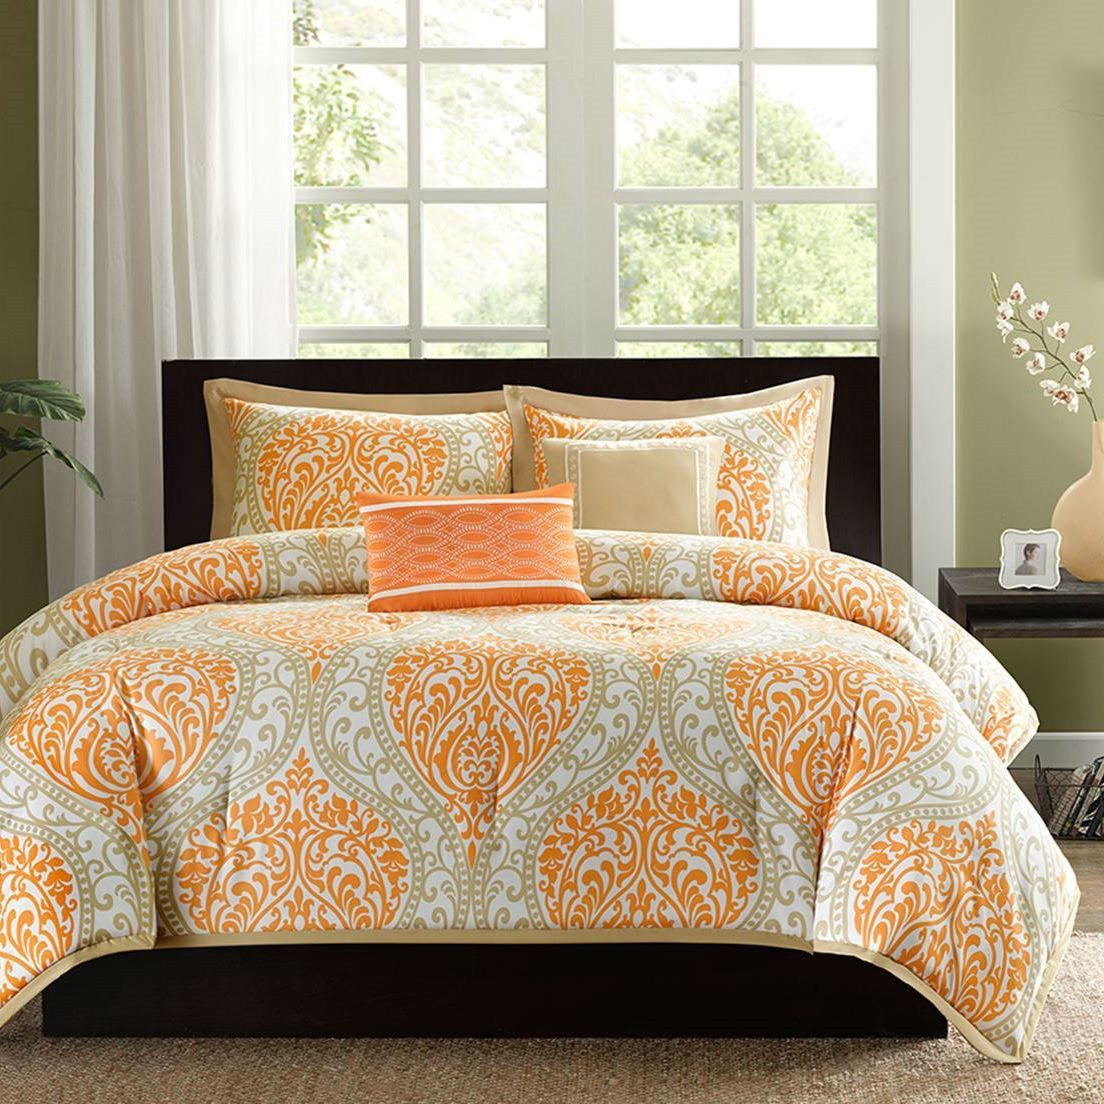 king agrimarques comforters bedroom idea inside your house target outstanding quilts comforter size